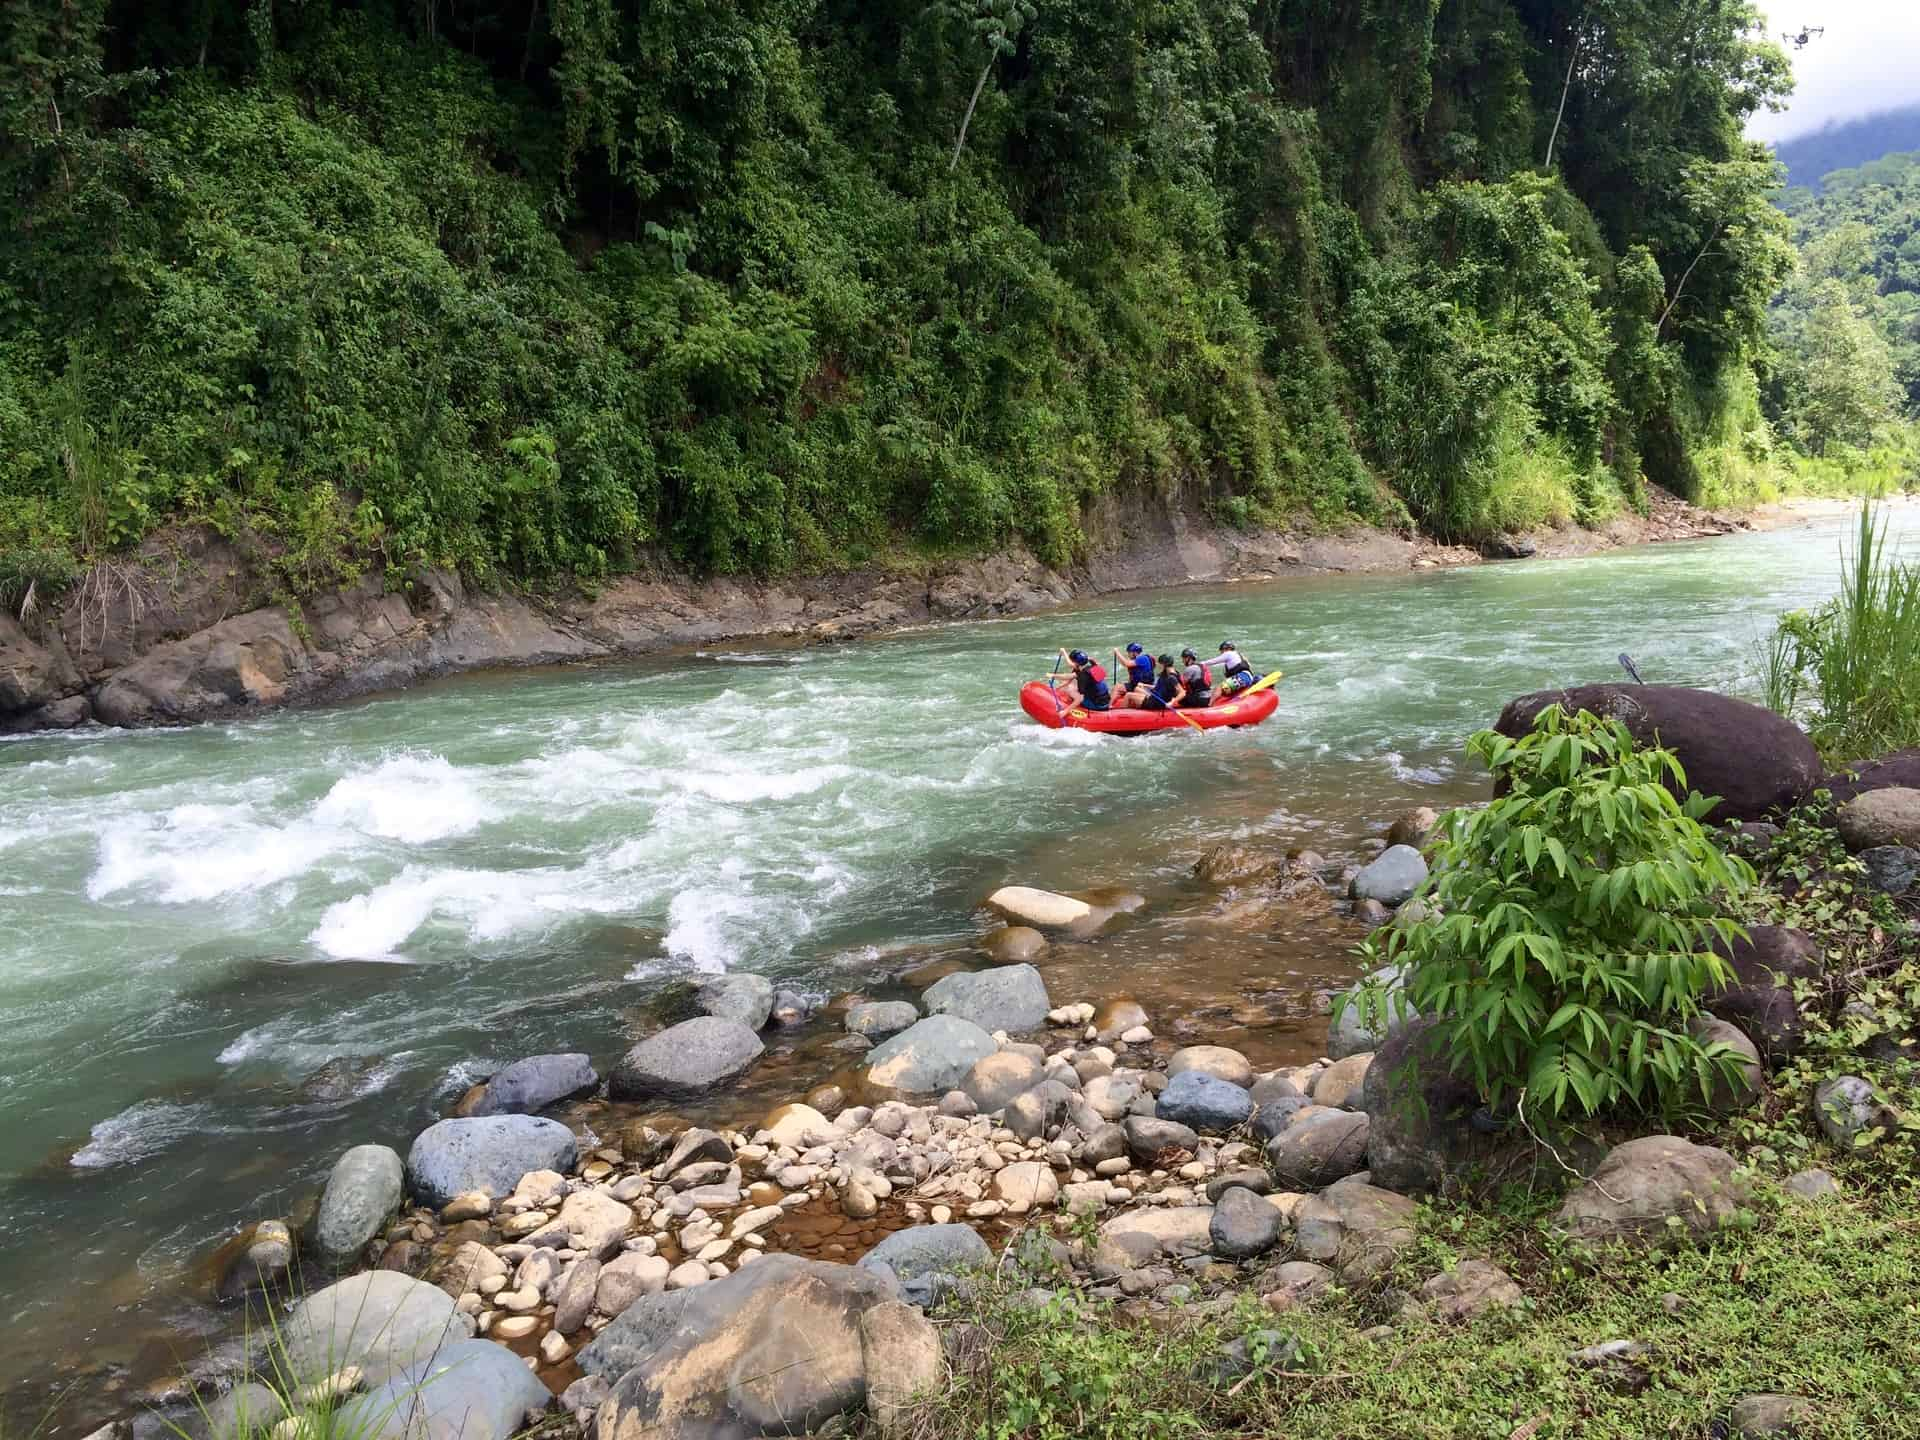 Rafting on the Savegre River.